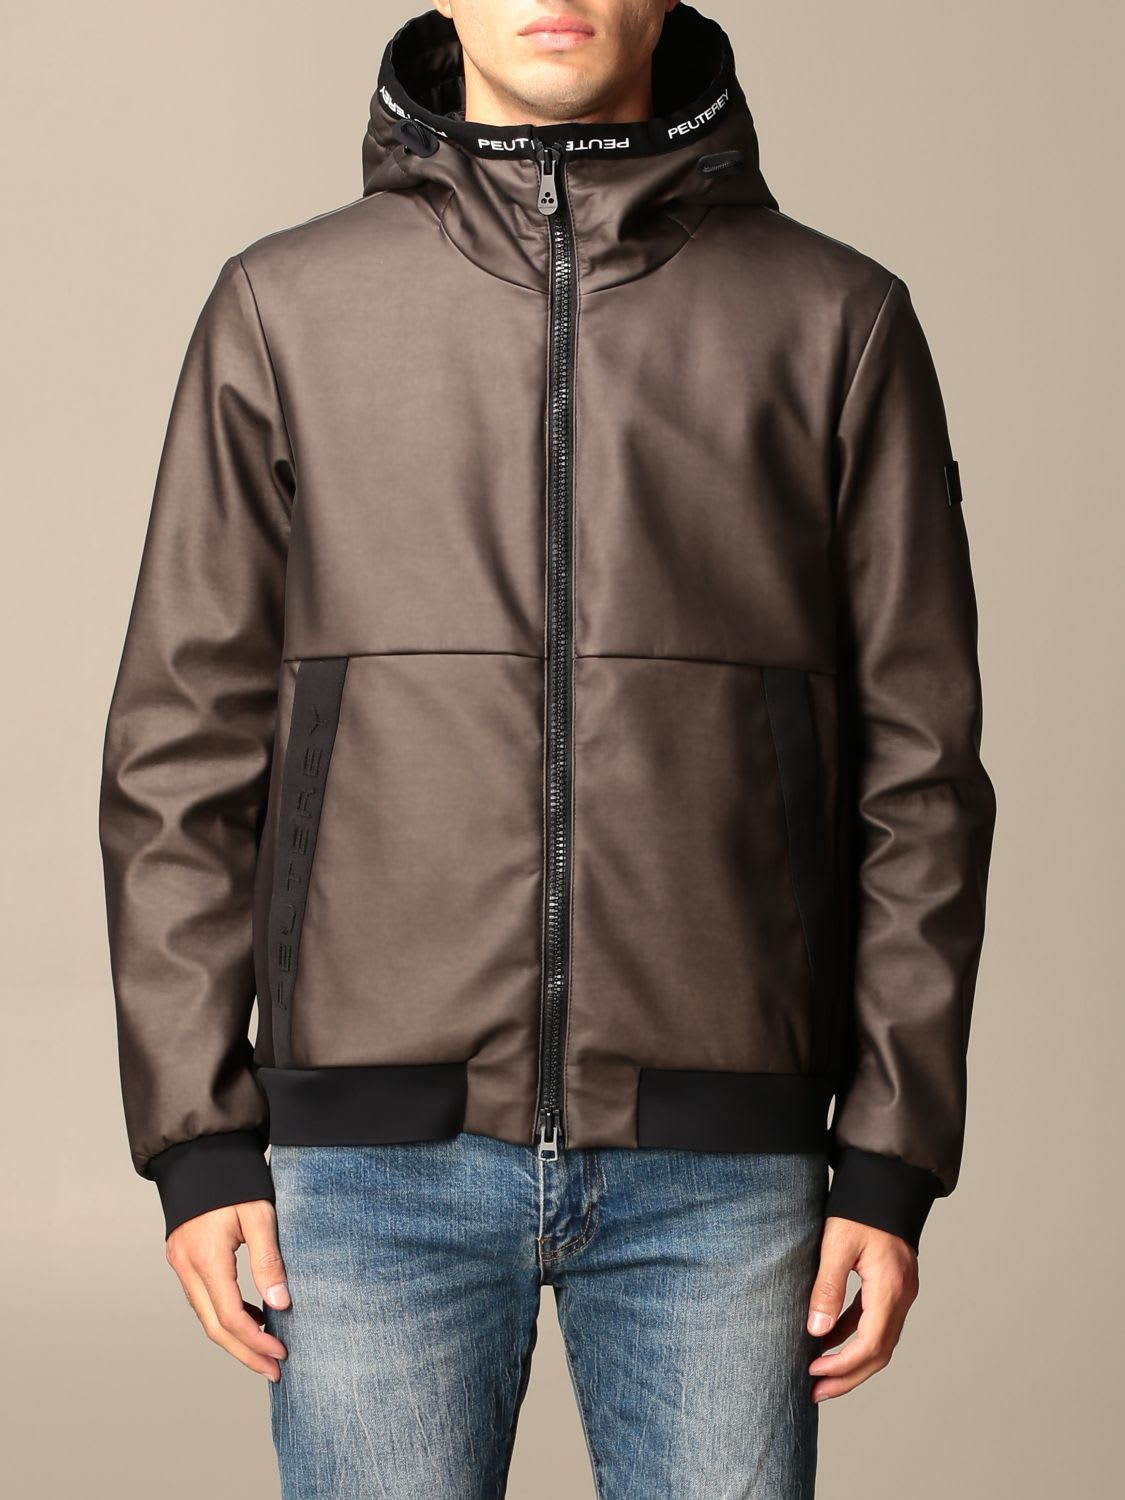 Peuterey Jacket Beckci Peuterey Bomber In Coated Technical Fabric